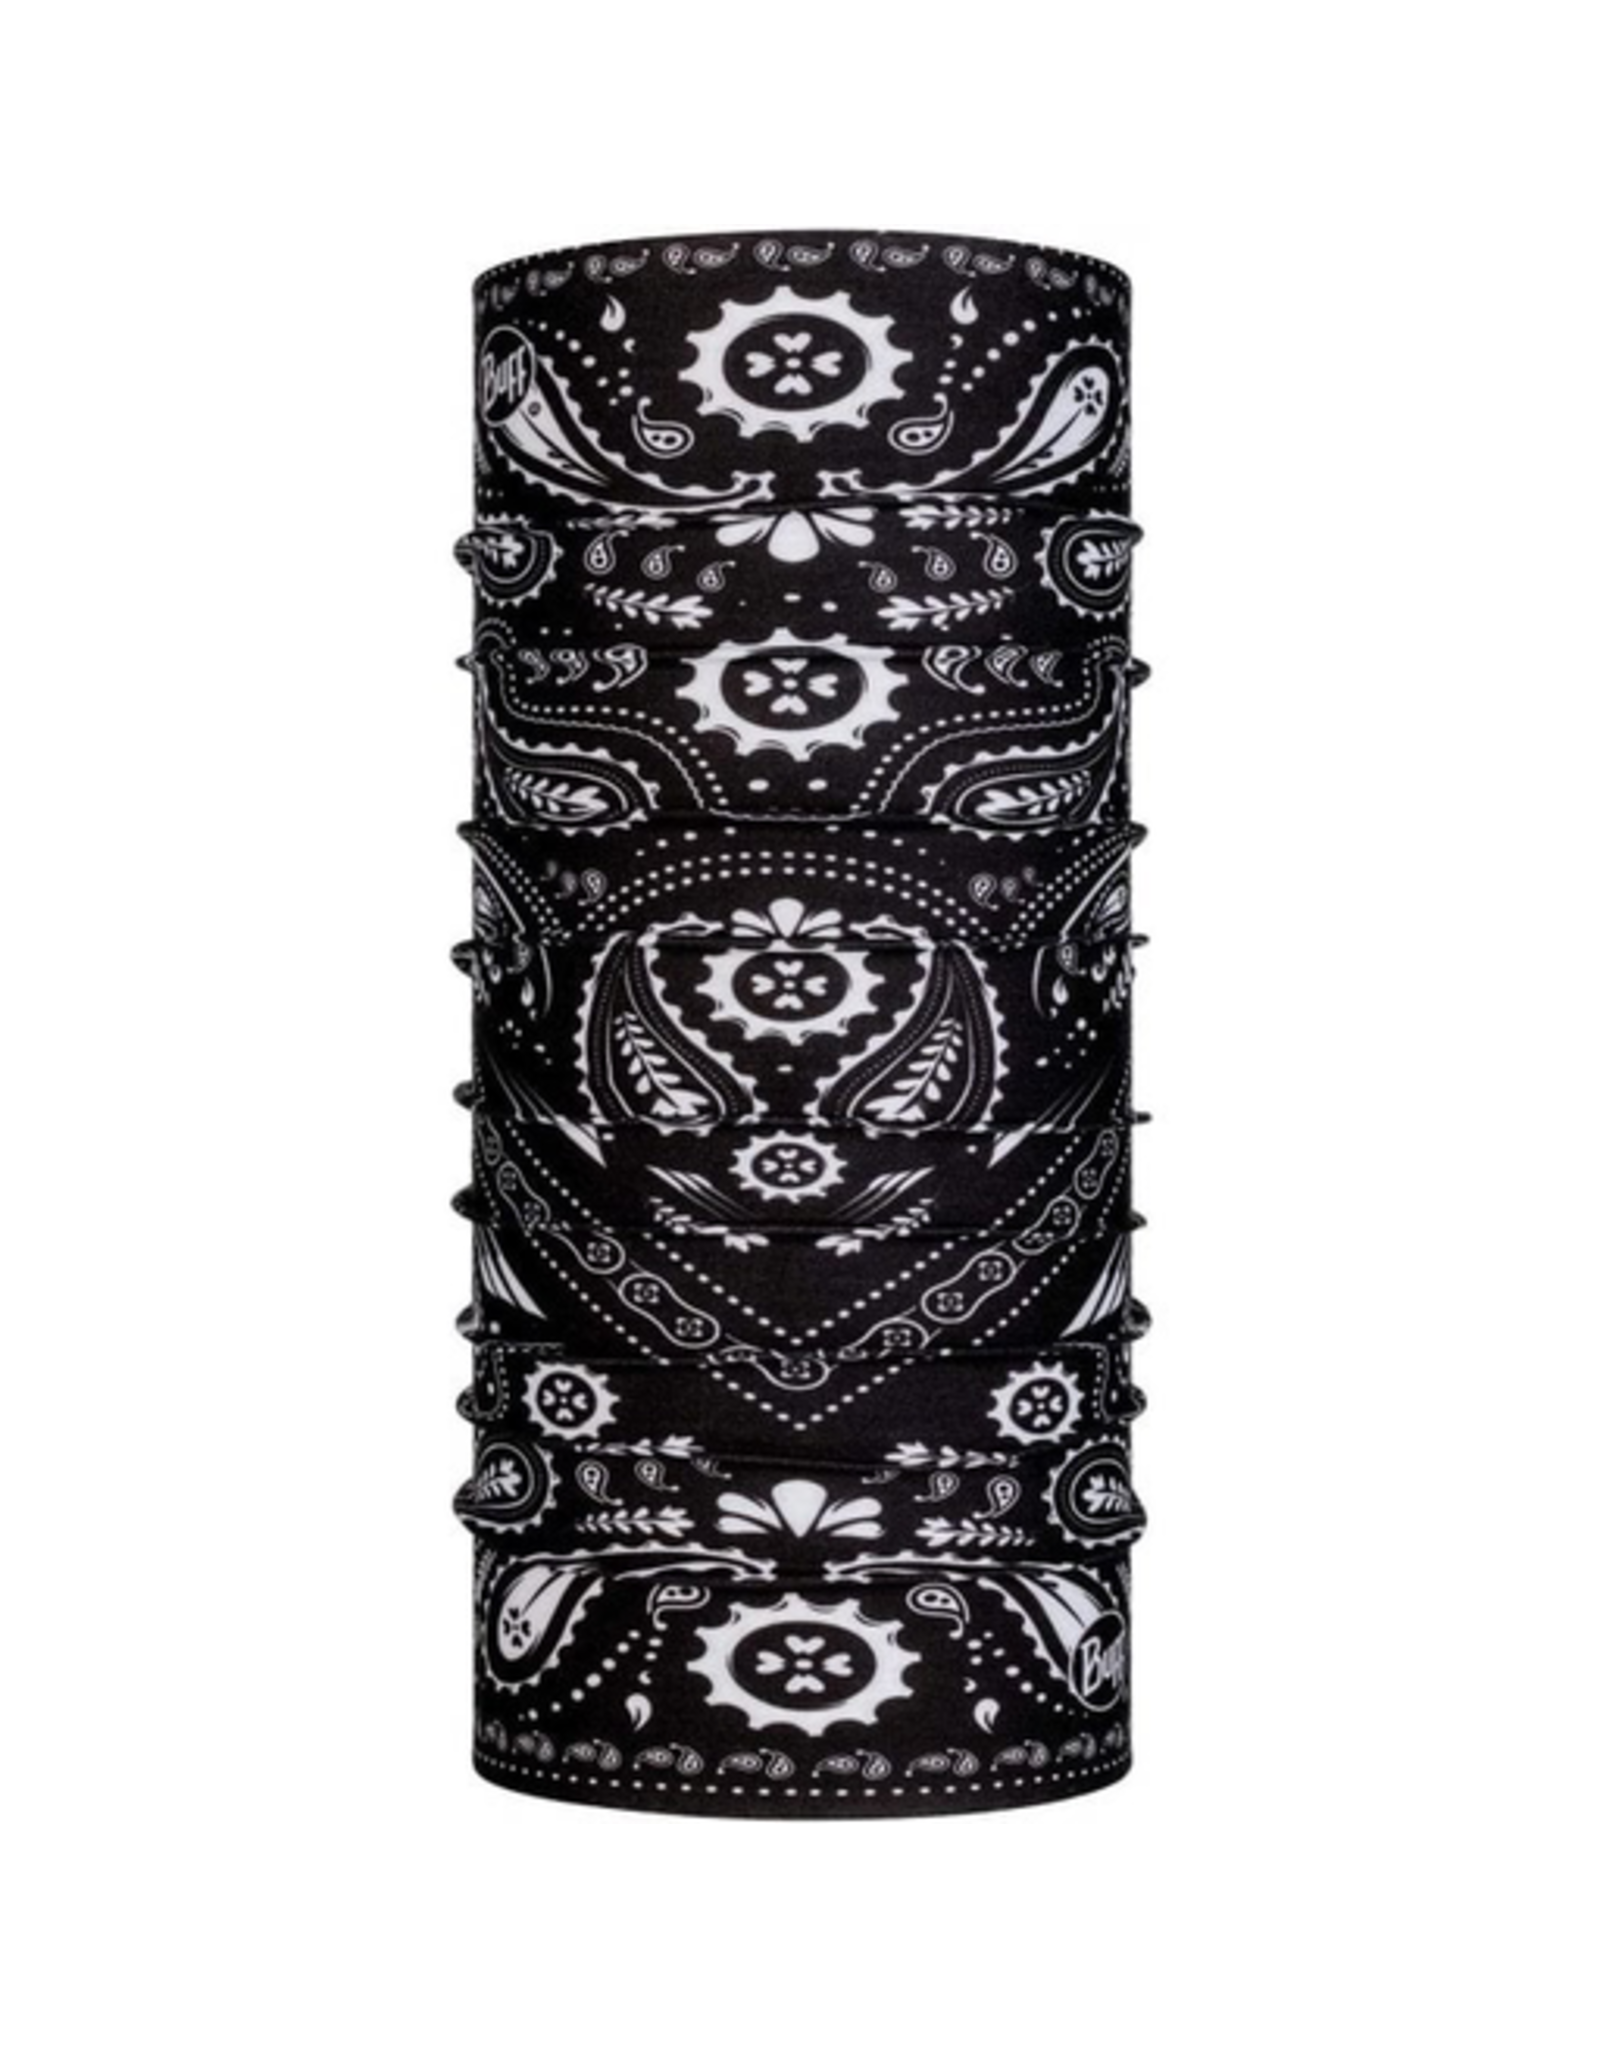 BUFF BUFF Original Cashmere Black